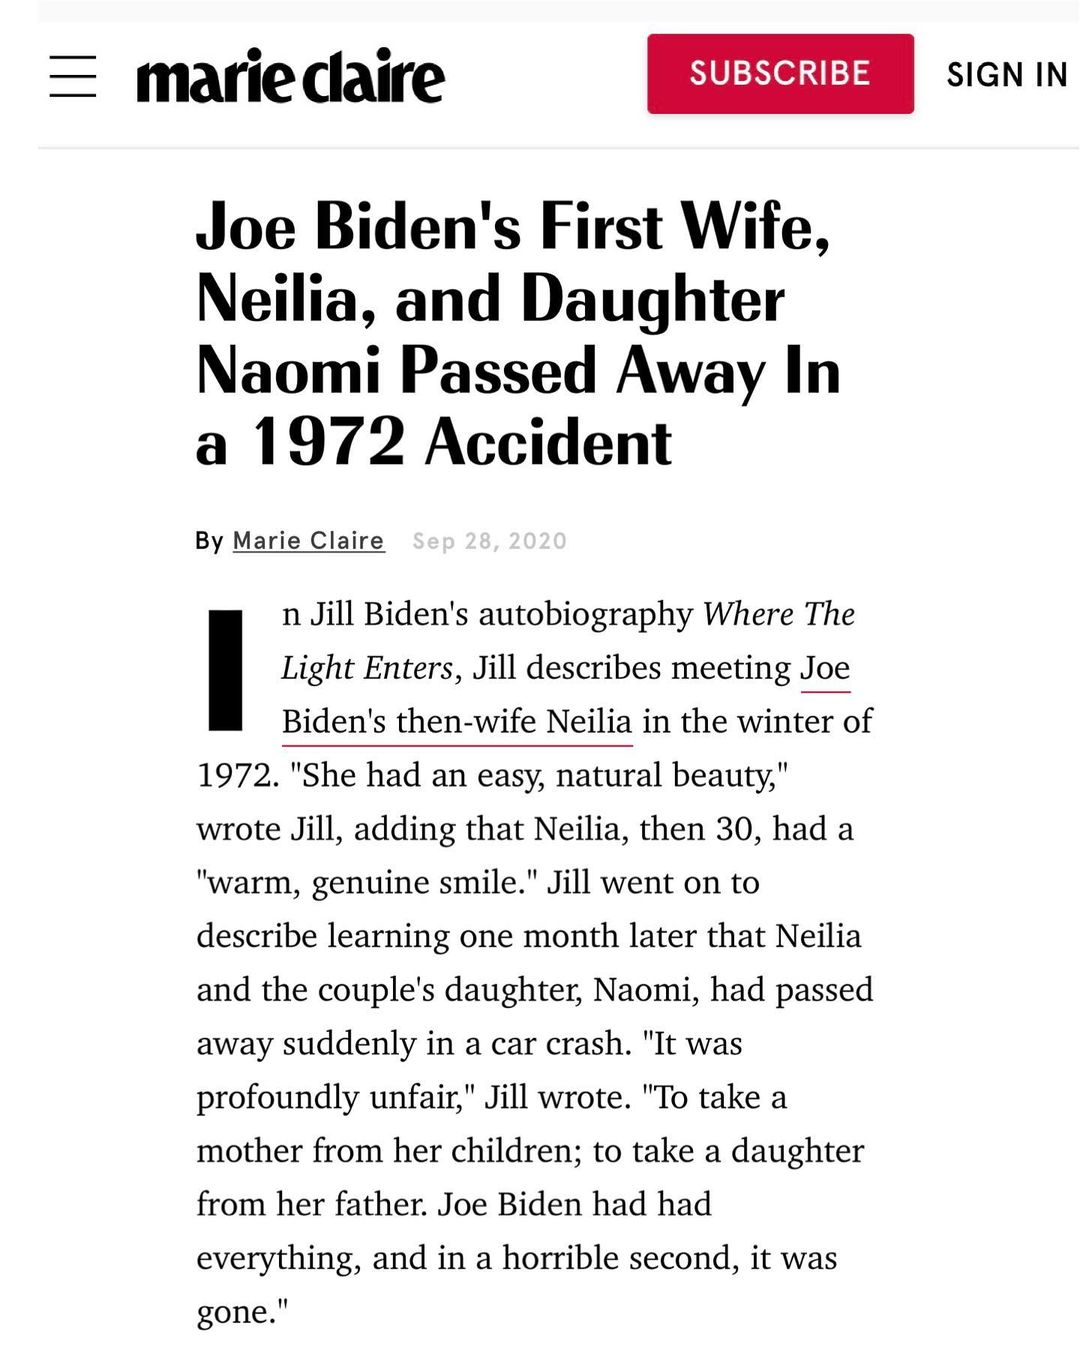 Joe Biden's First Wife, Neilia, and Daughter Naomi Passed Away In a 1972 Accident